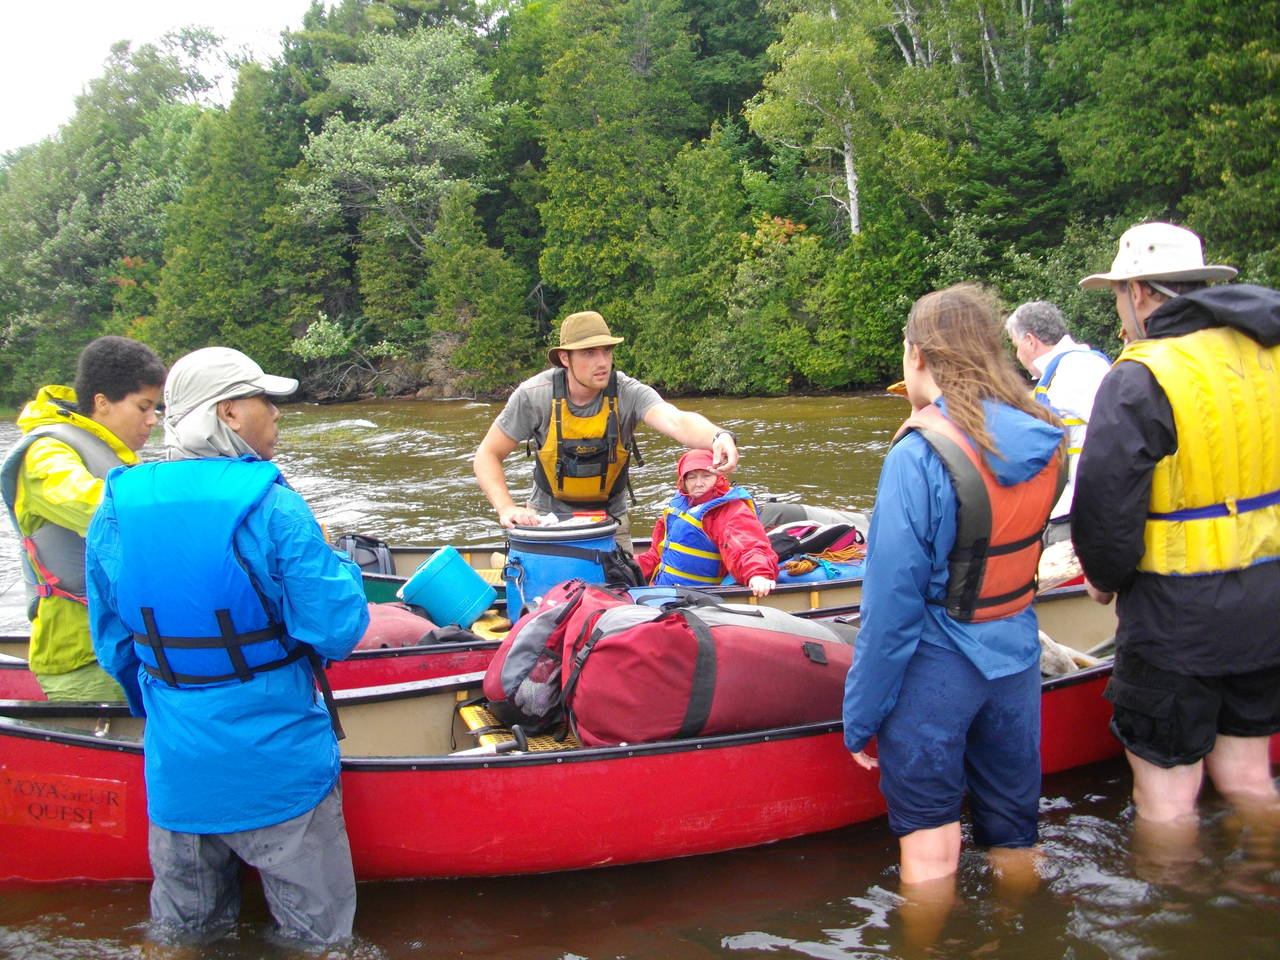 Packing up after a portage